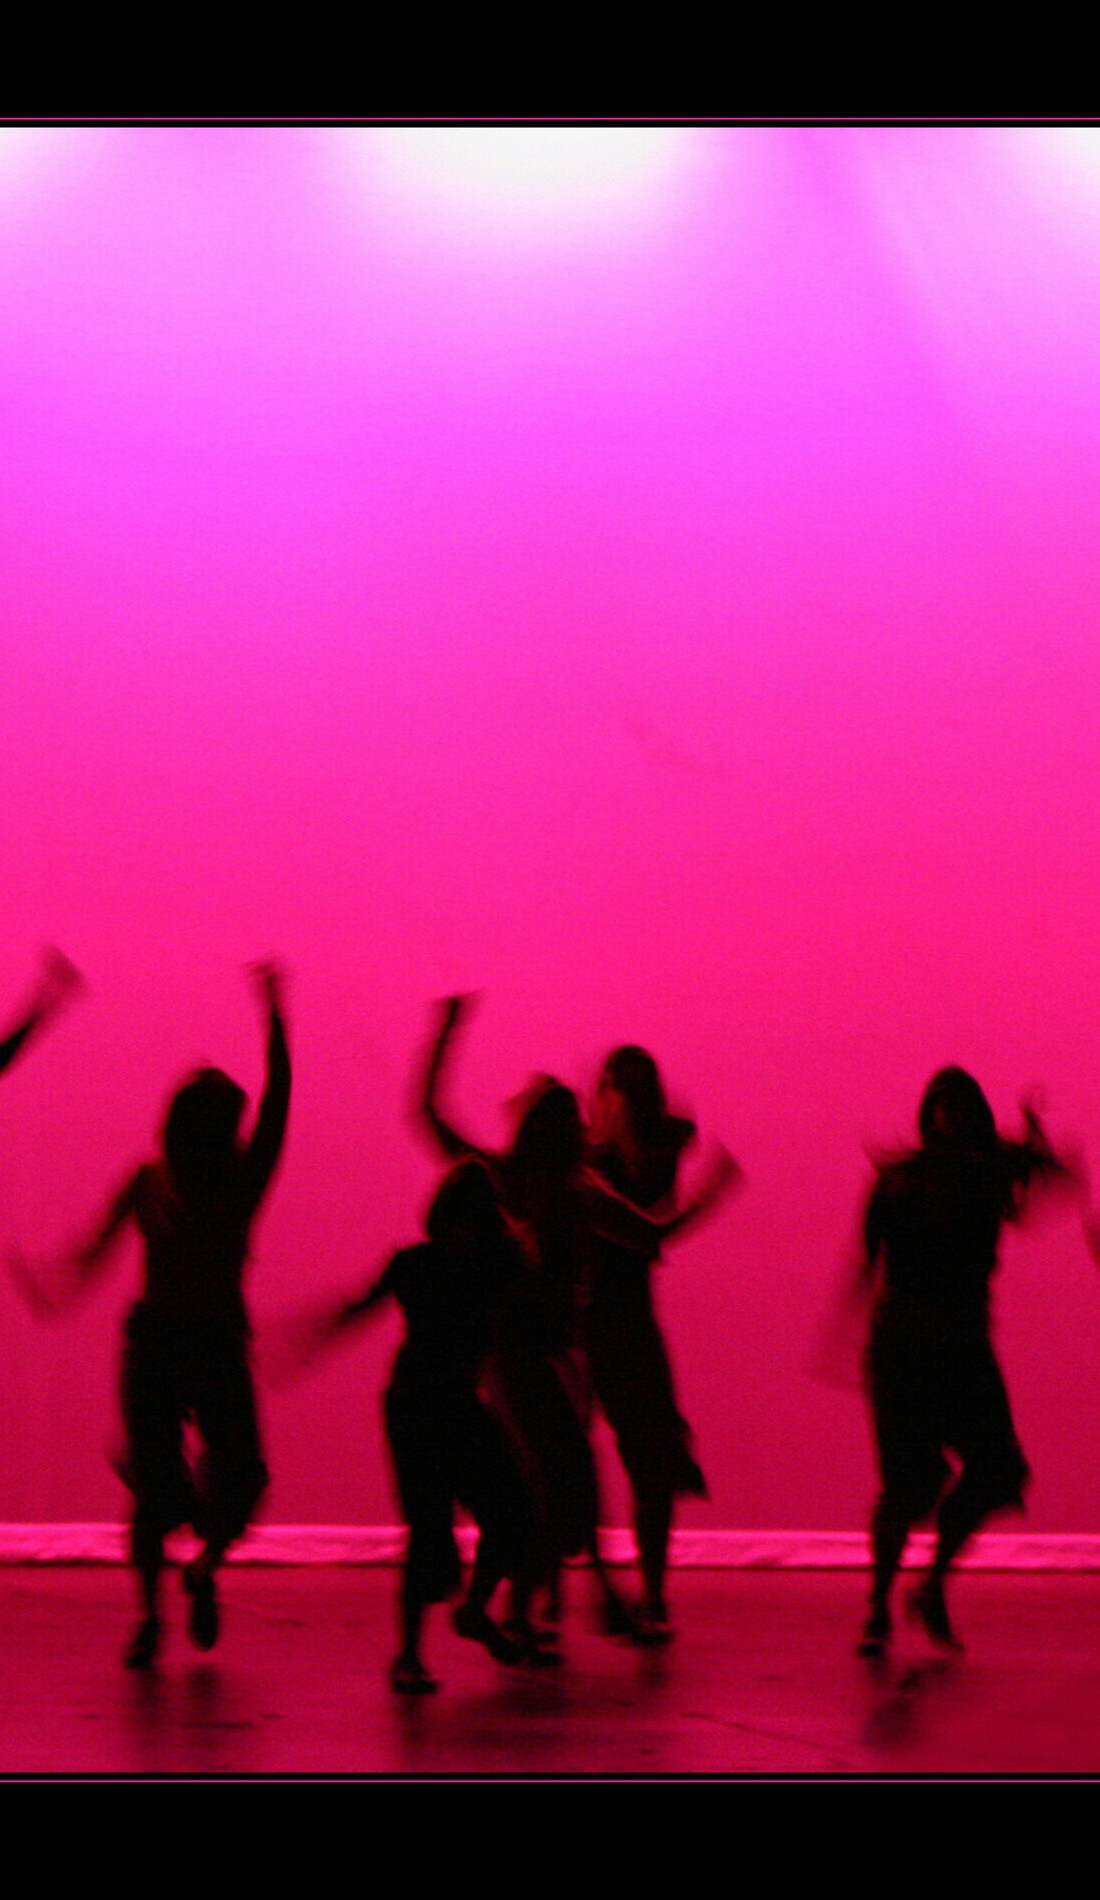 A Twin Cities School Of Dance live event